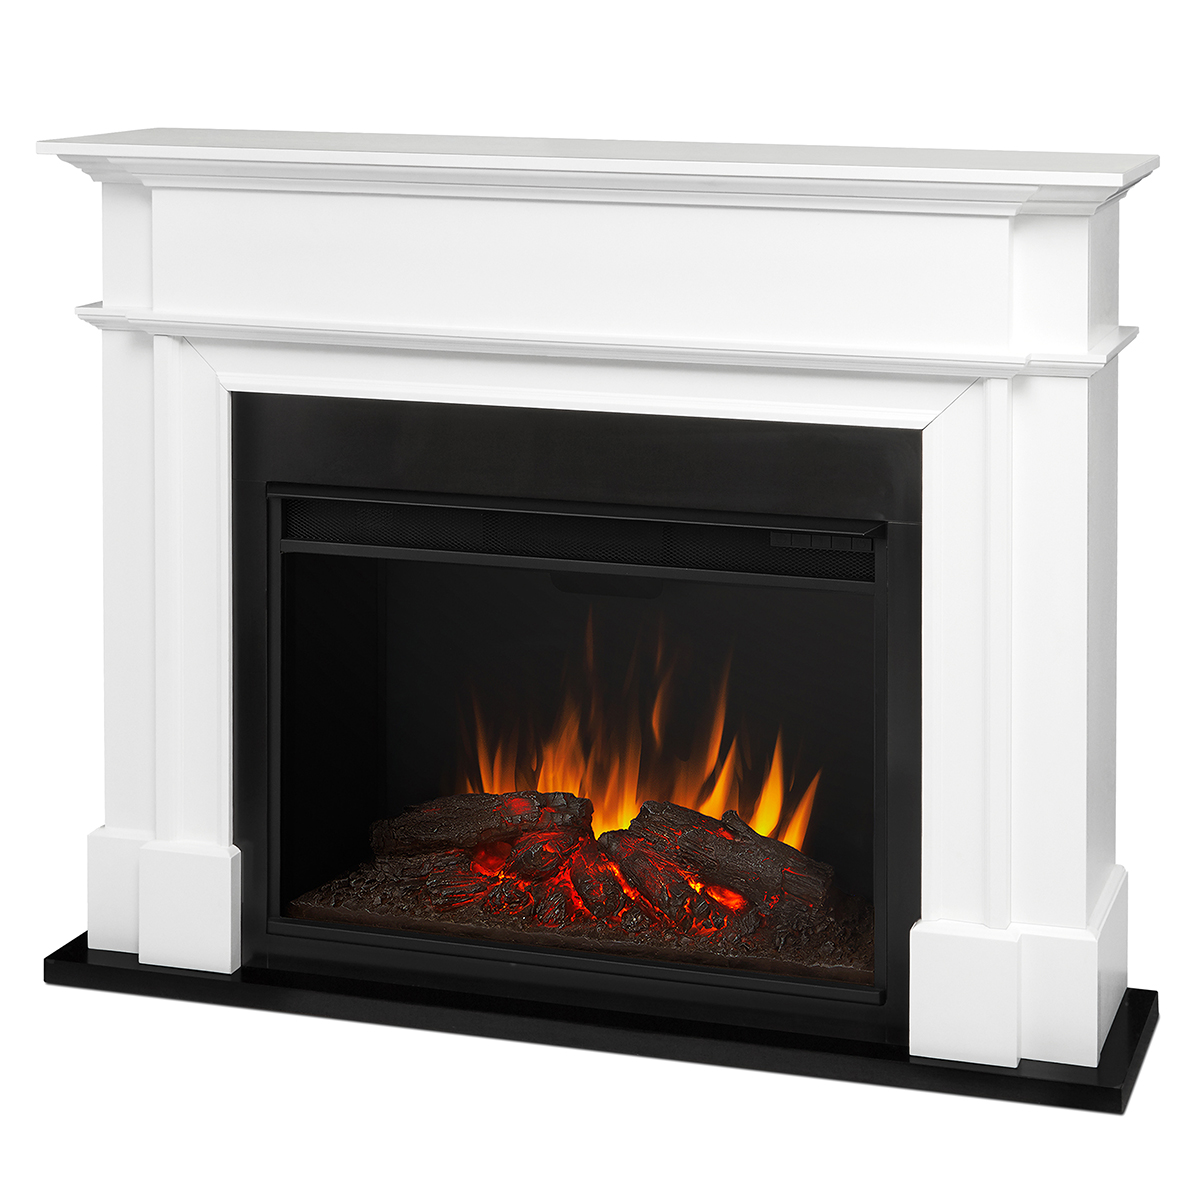 Real Flame 8060e W Harlan Grand Indoor Ventless Electric Fireplace In White W Black Surround